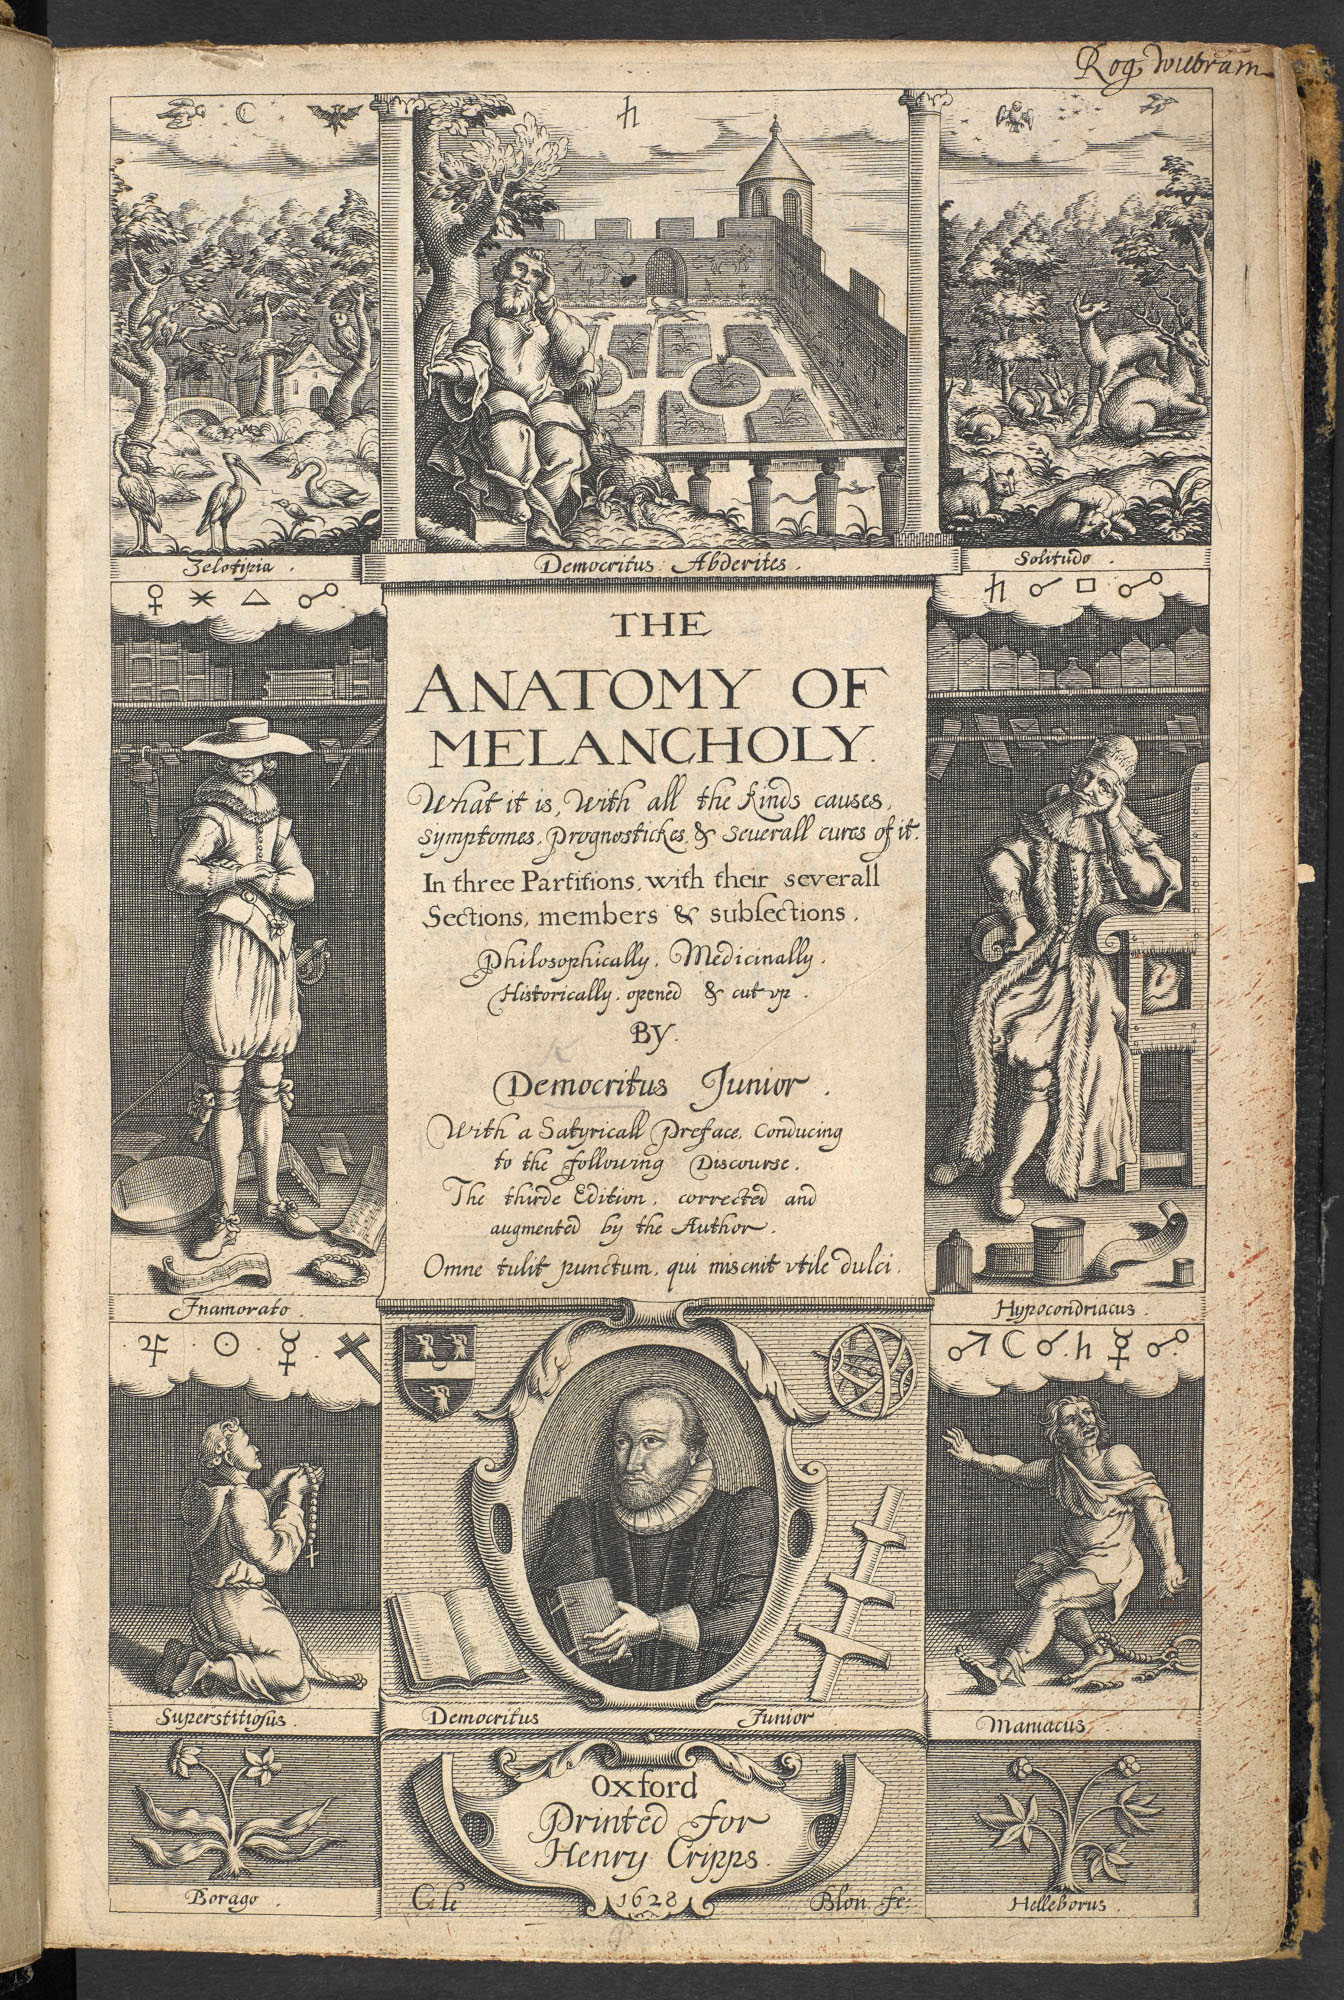 Burton's Anatomy of Melancholy, 1628